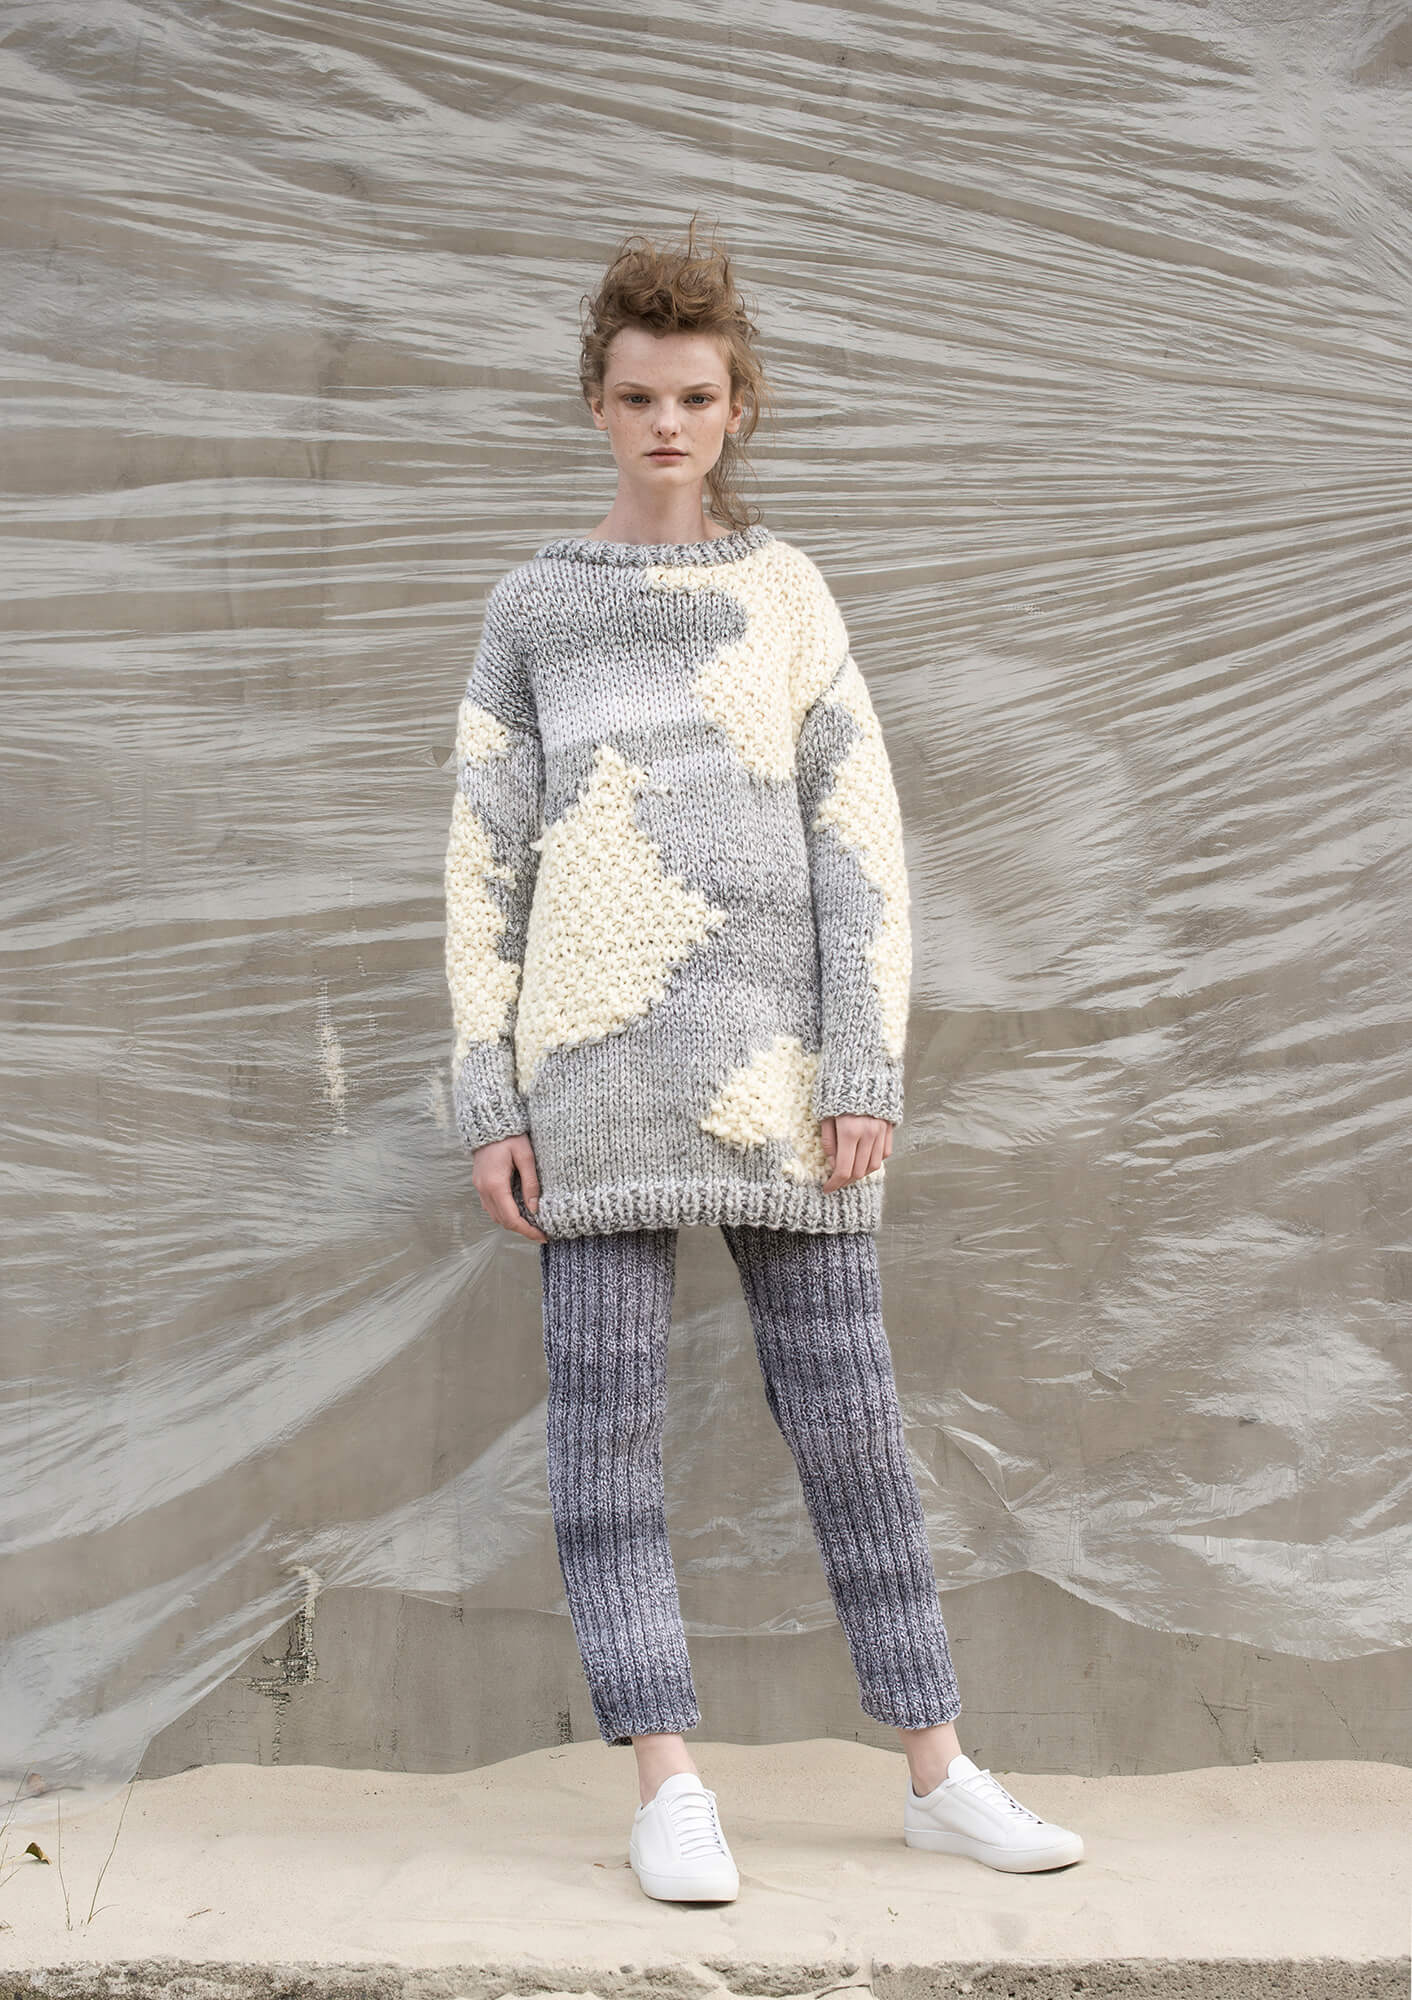 AnnaDudzinska_Natural_Thing_aw2016_lookbook_11